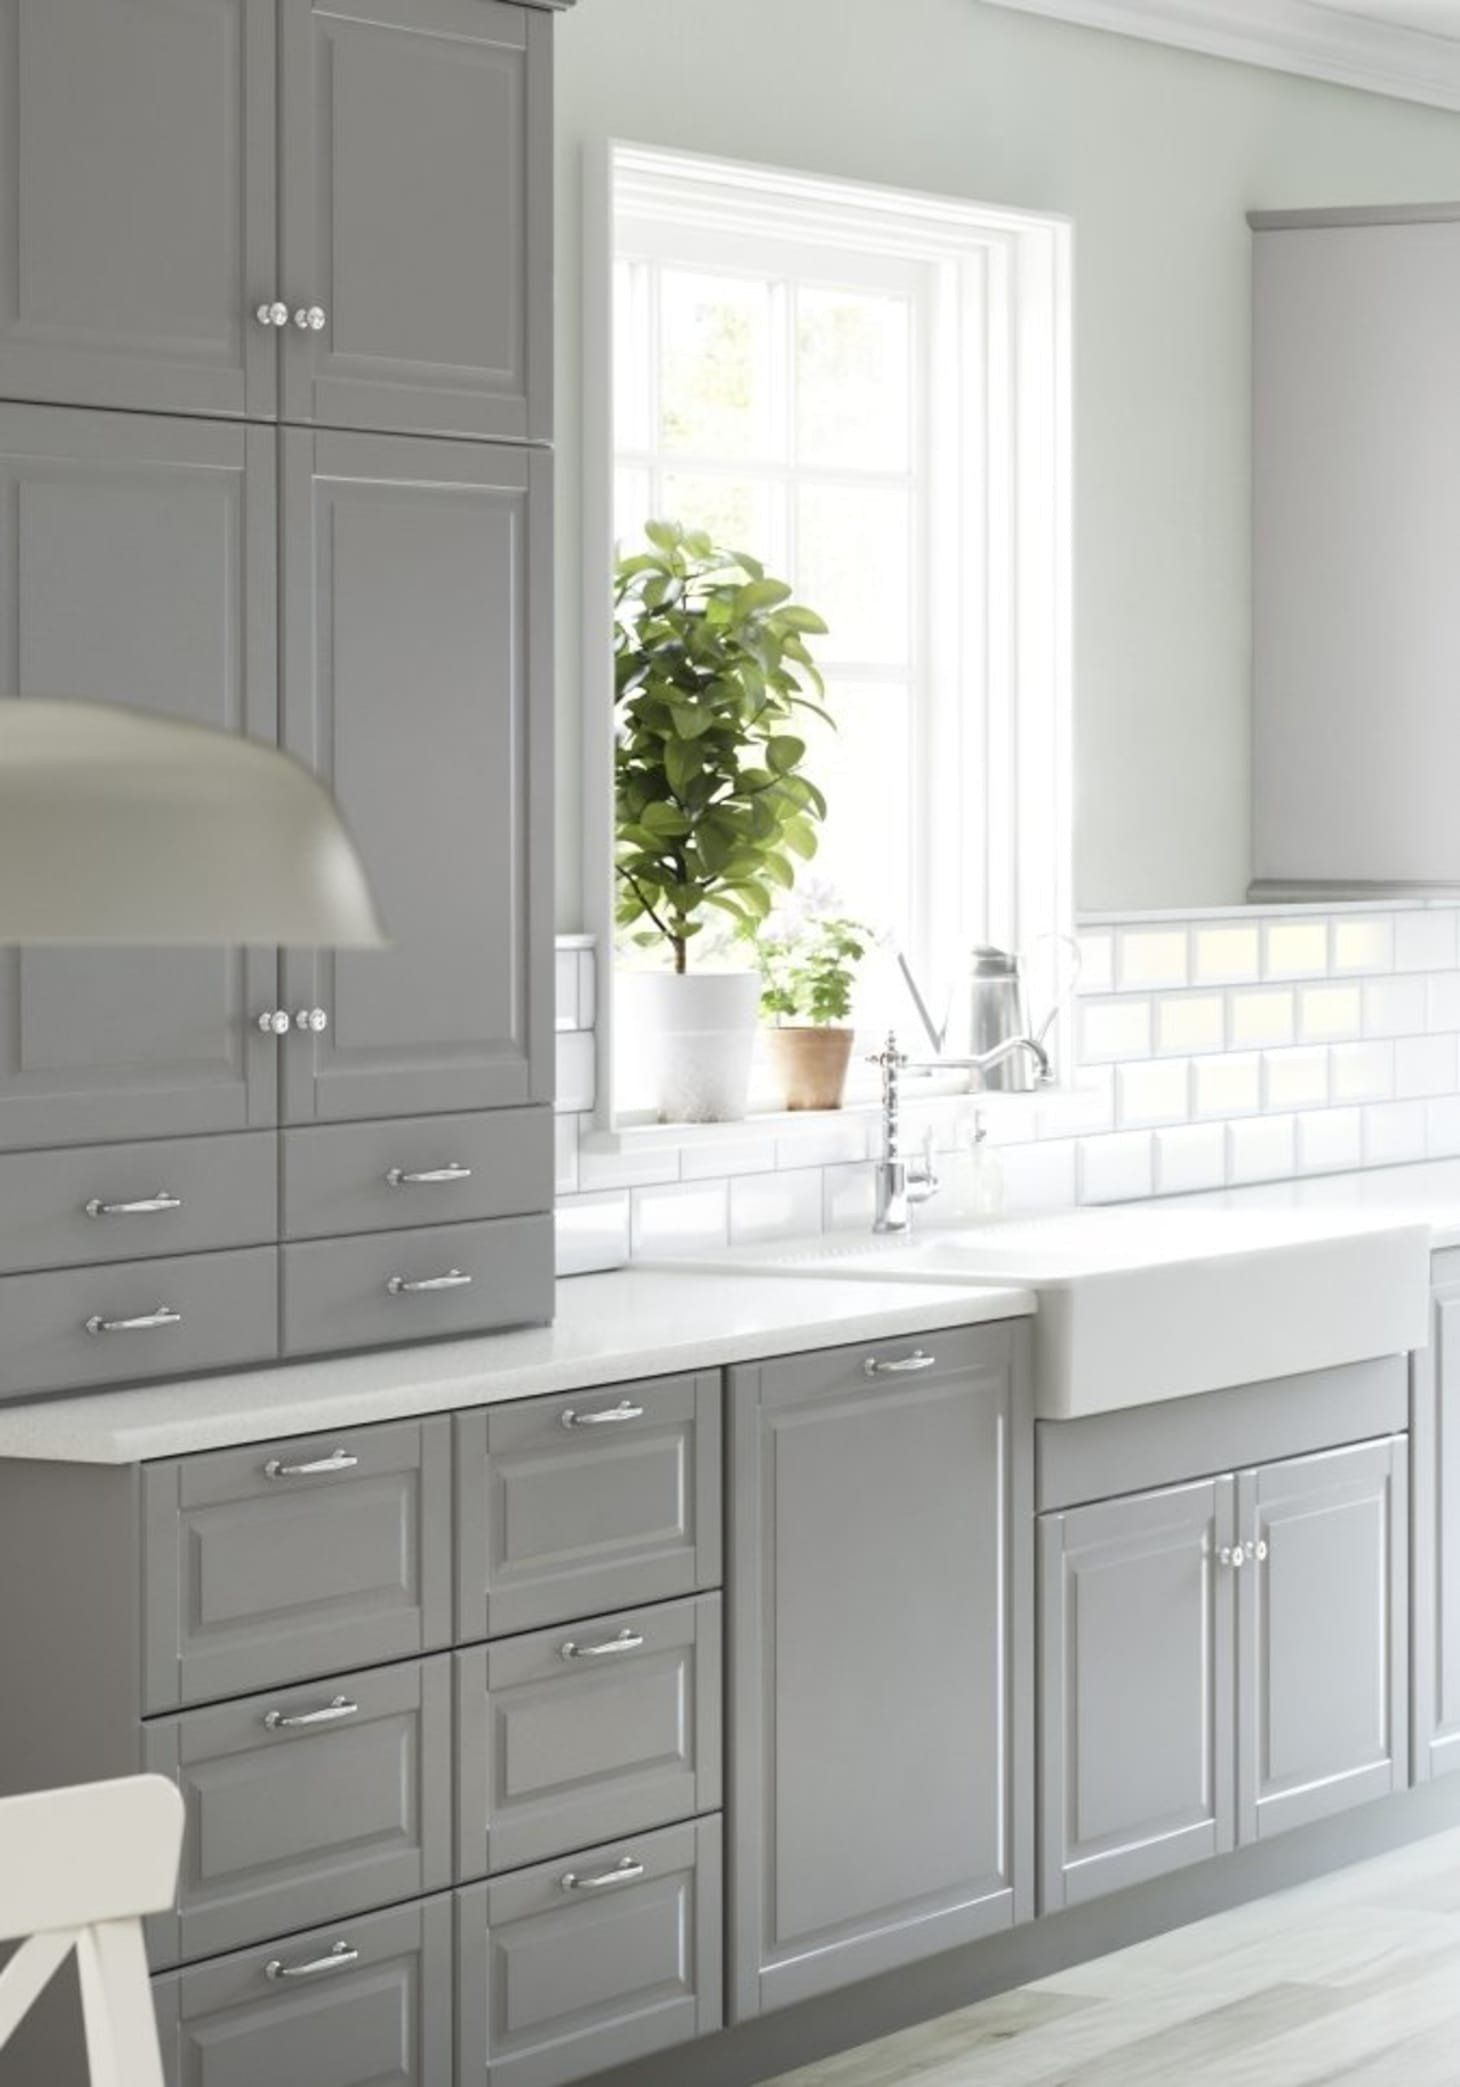 Using Ikea Kitchen Cabinet In Bathroom Elegant Ikea Sektion New Kitchen Cabinet Guide S Prices In 2020 Grey Kitchen Cabinets Kitchen Cabinet Design Kitchen Cabinets